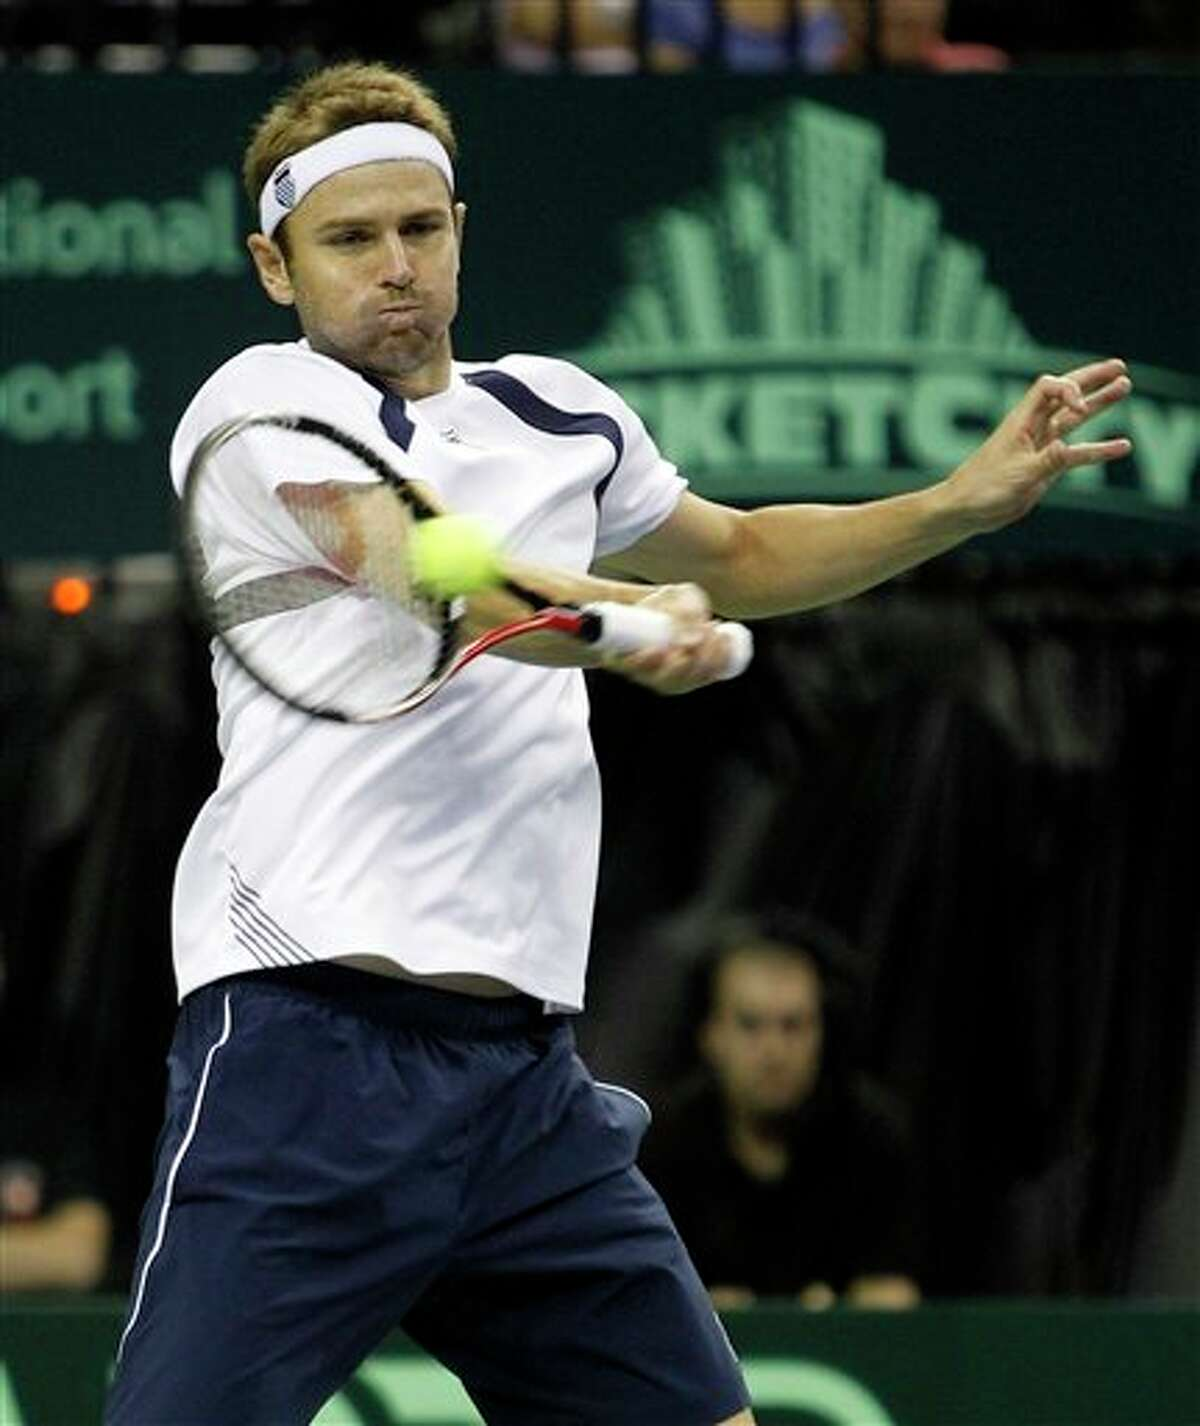 Mardy Fish of the U.S. returns the ball to Feliciano Lopez of Spain during the Davis Cup quarterfinal tennis match, Friday, July 8, 2011, in Austin, Texas. (AP Photo/Eric Gay)